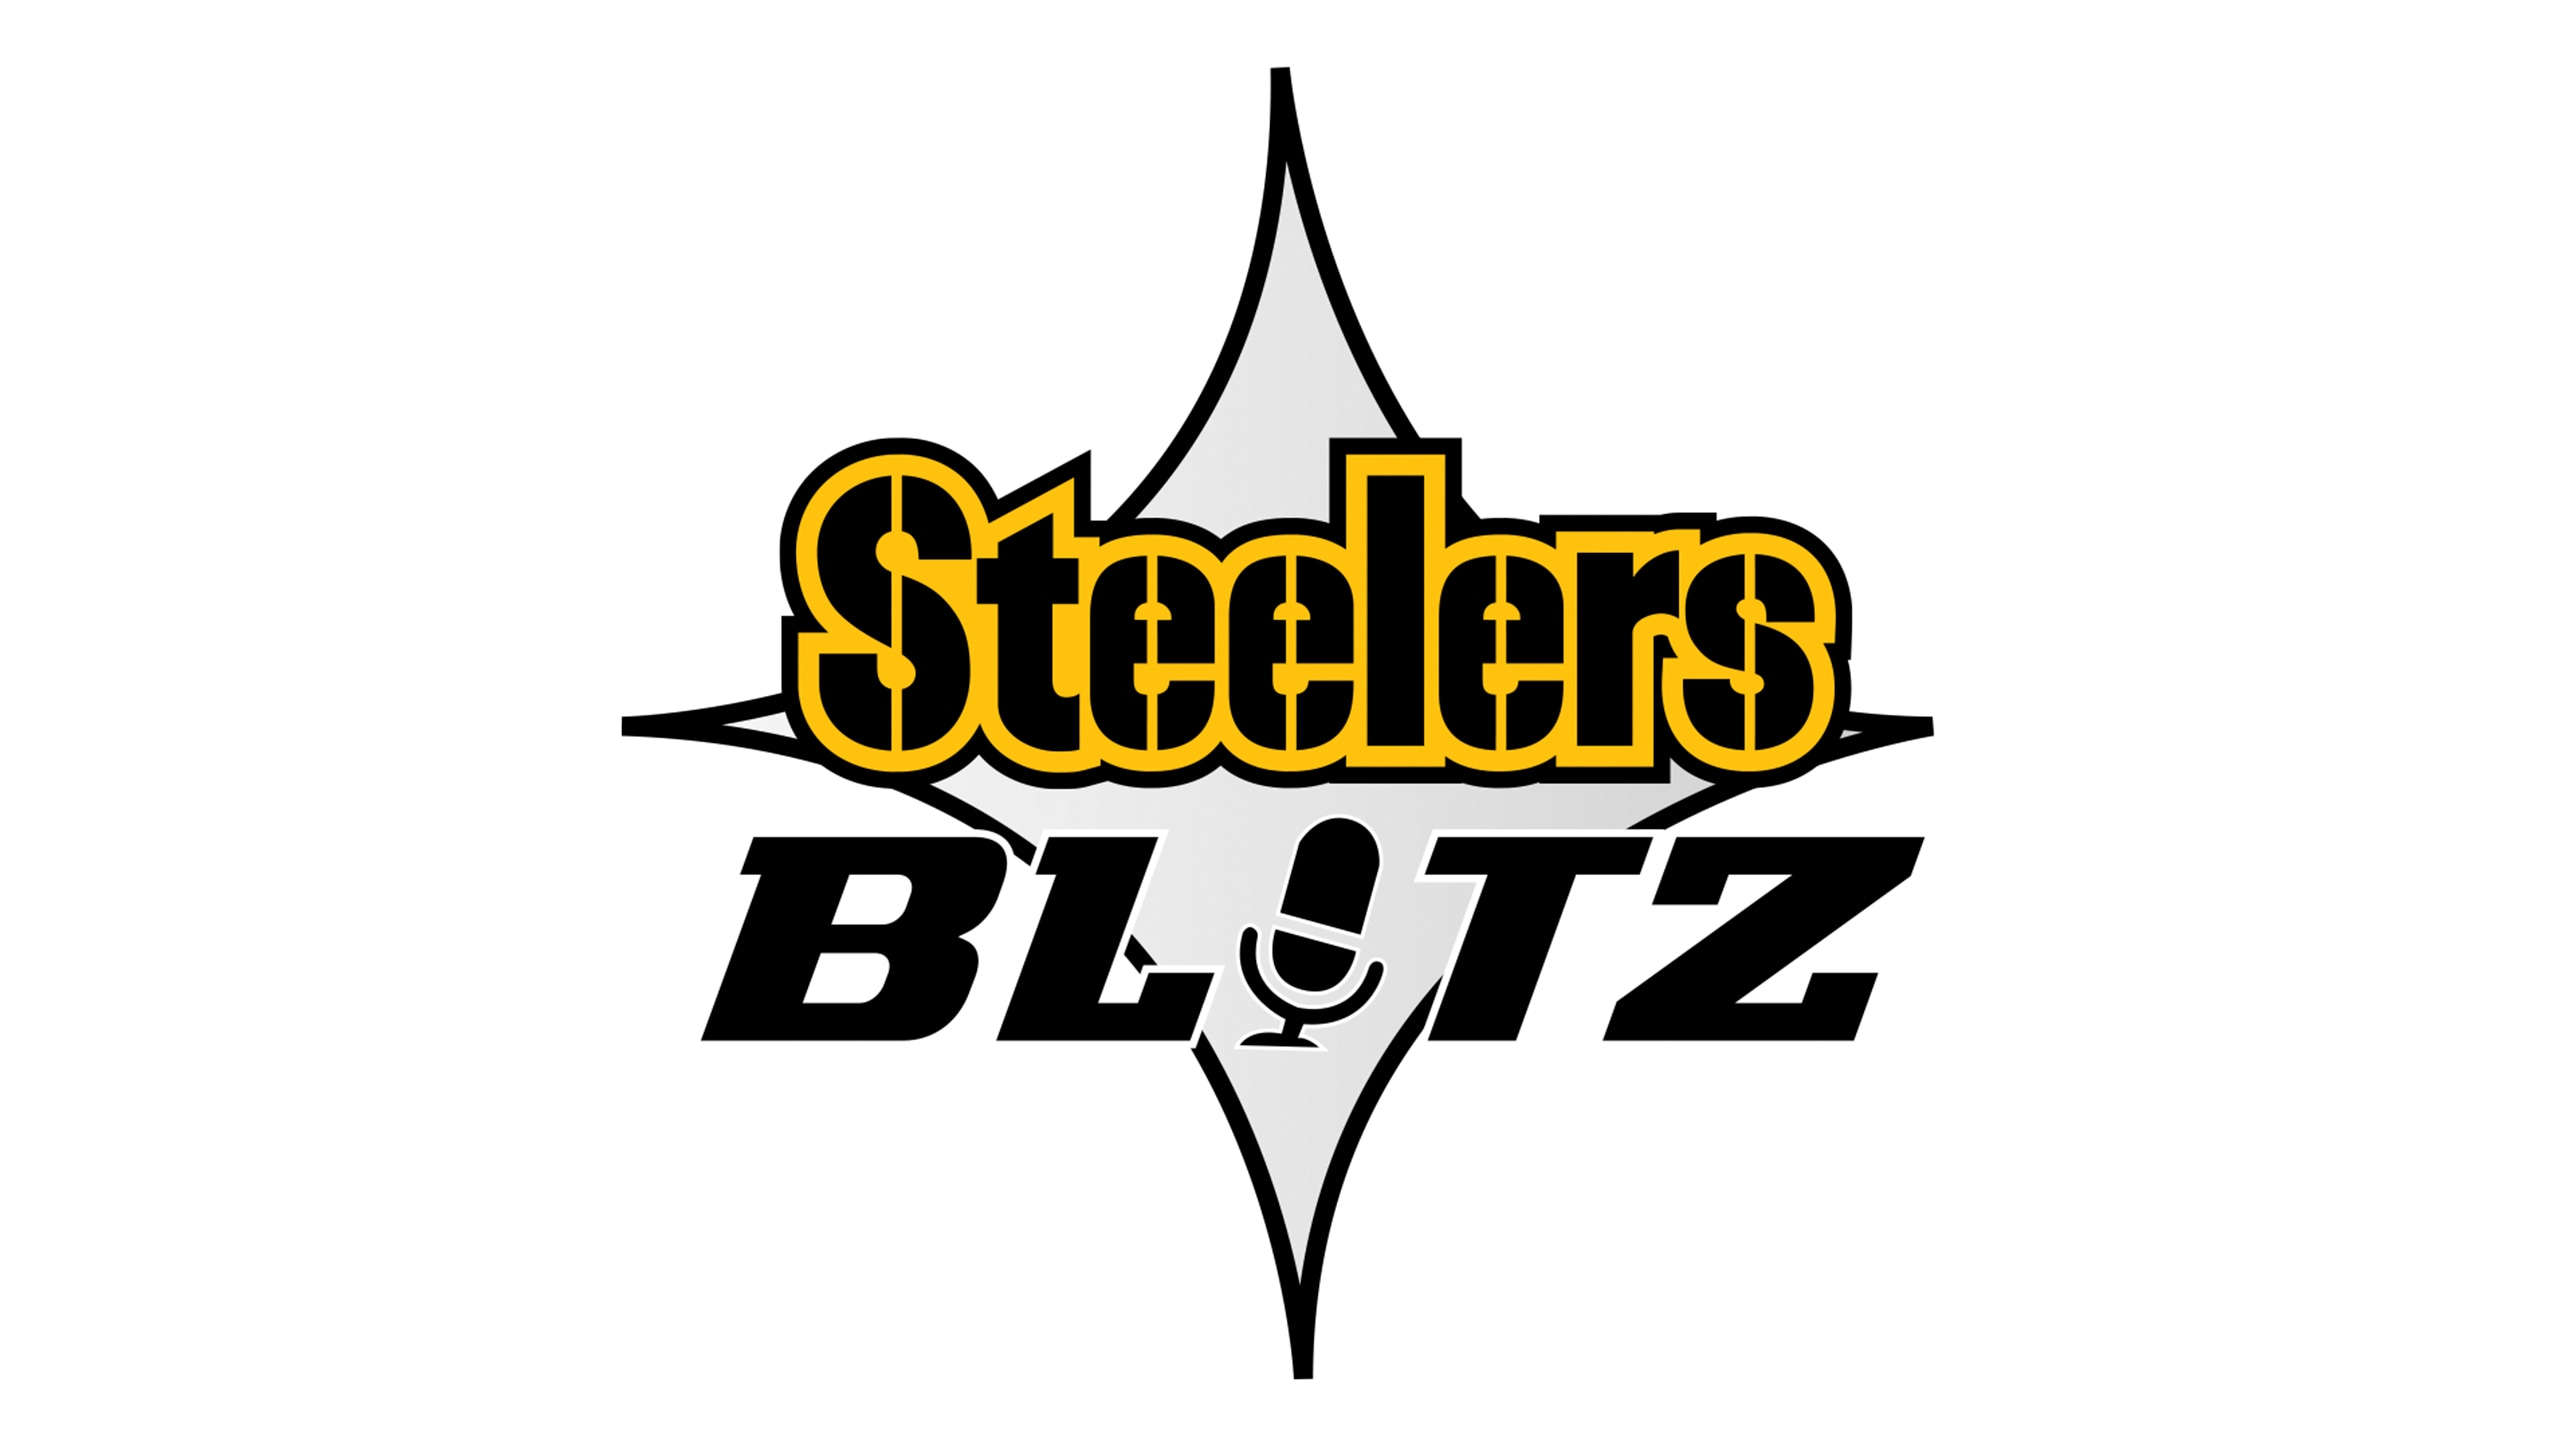 Steelers Blitz